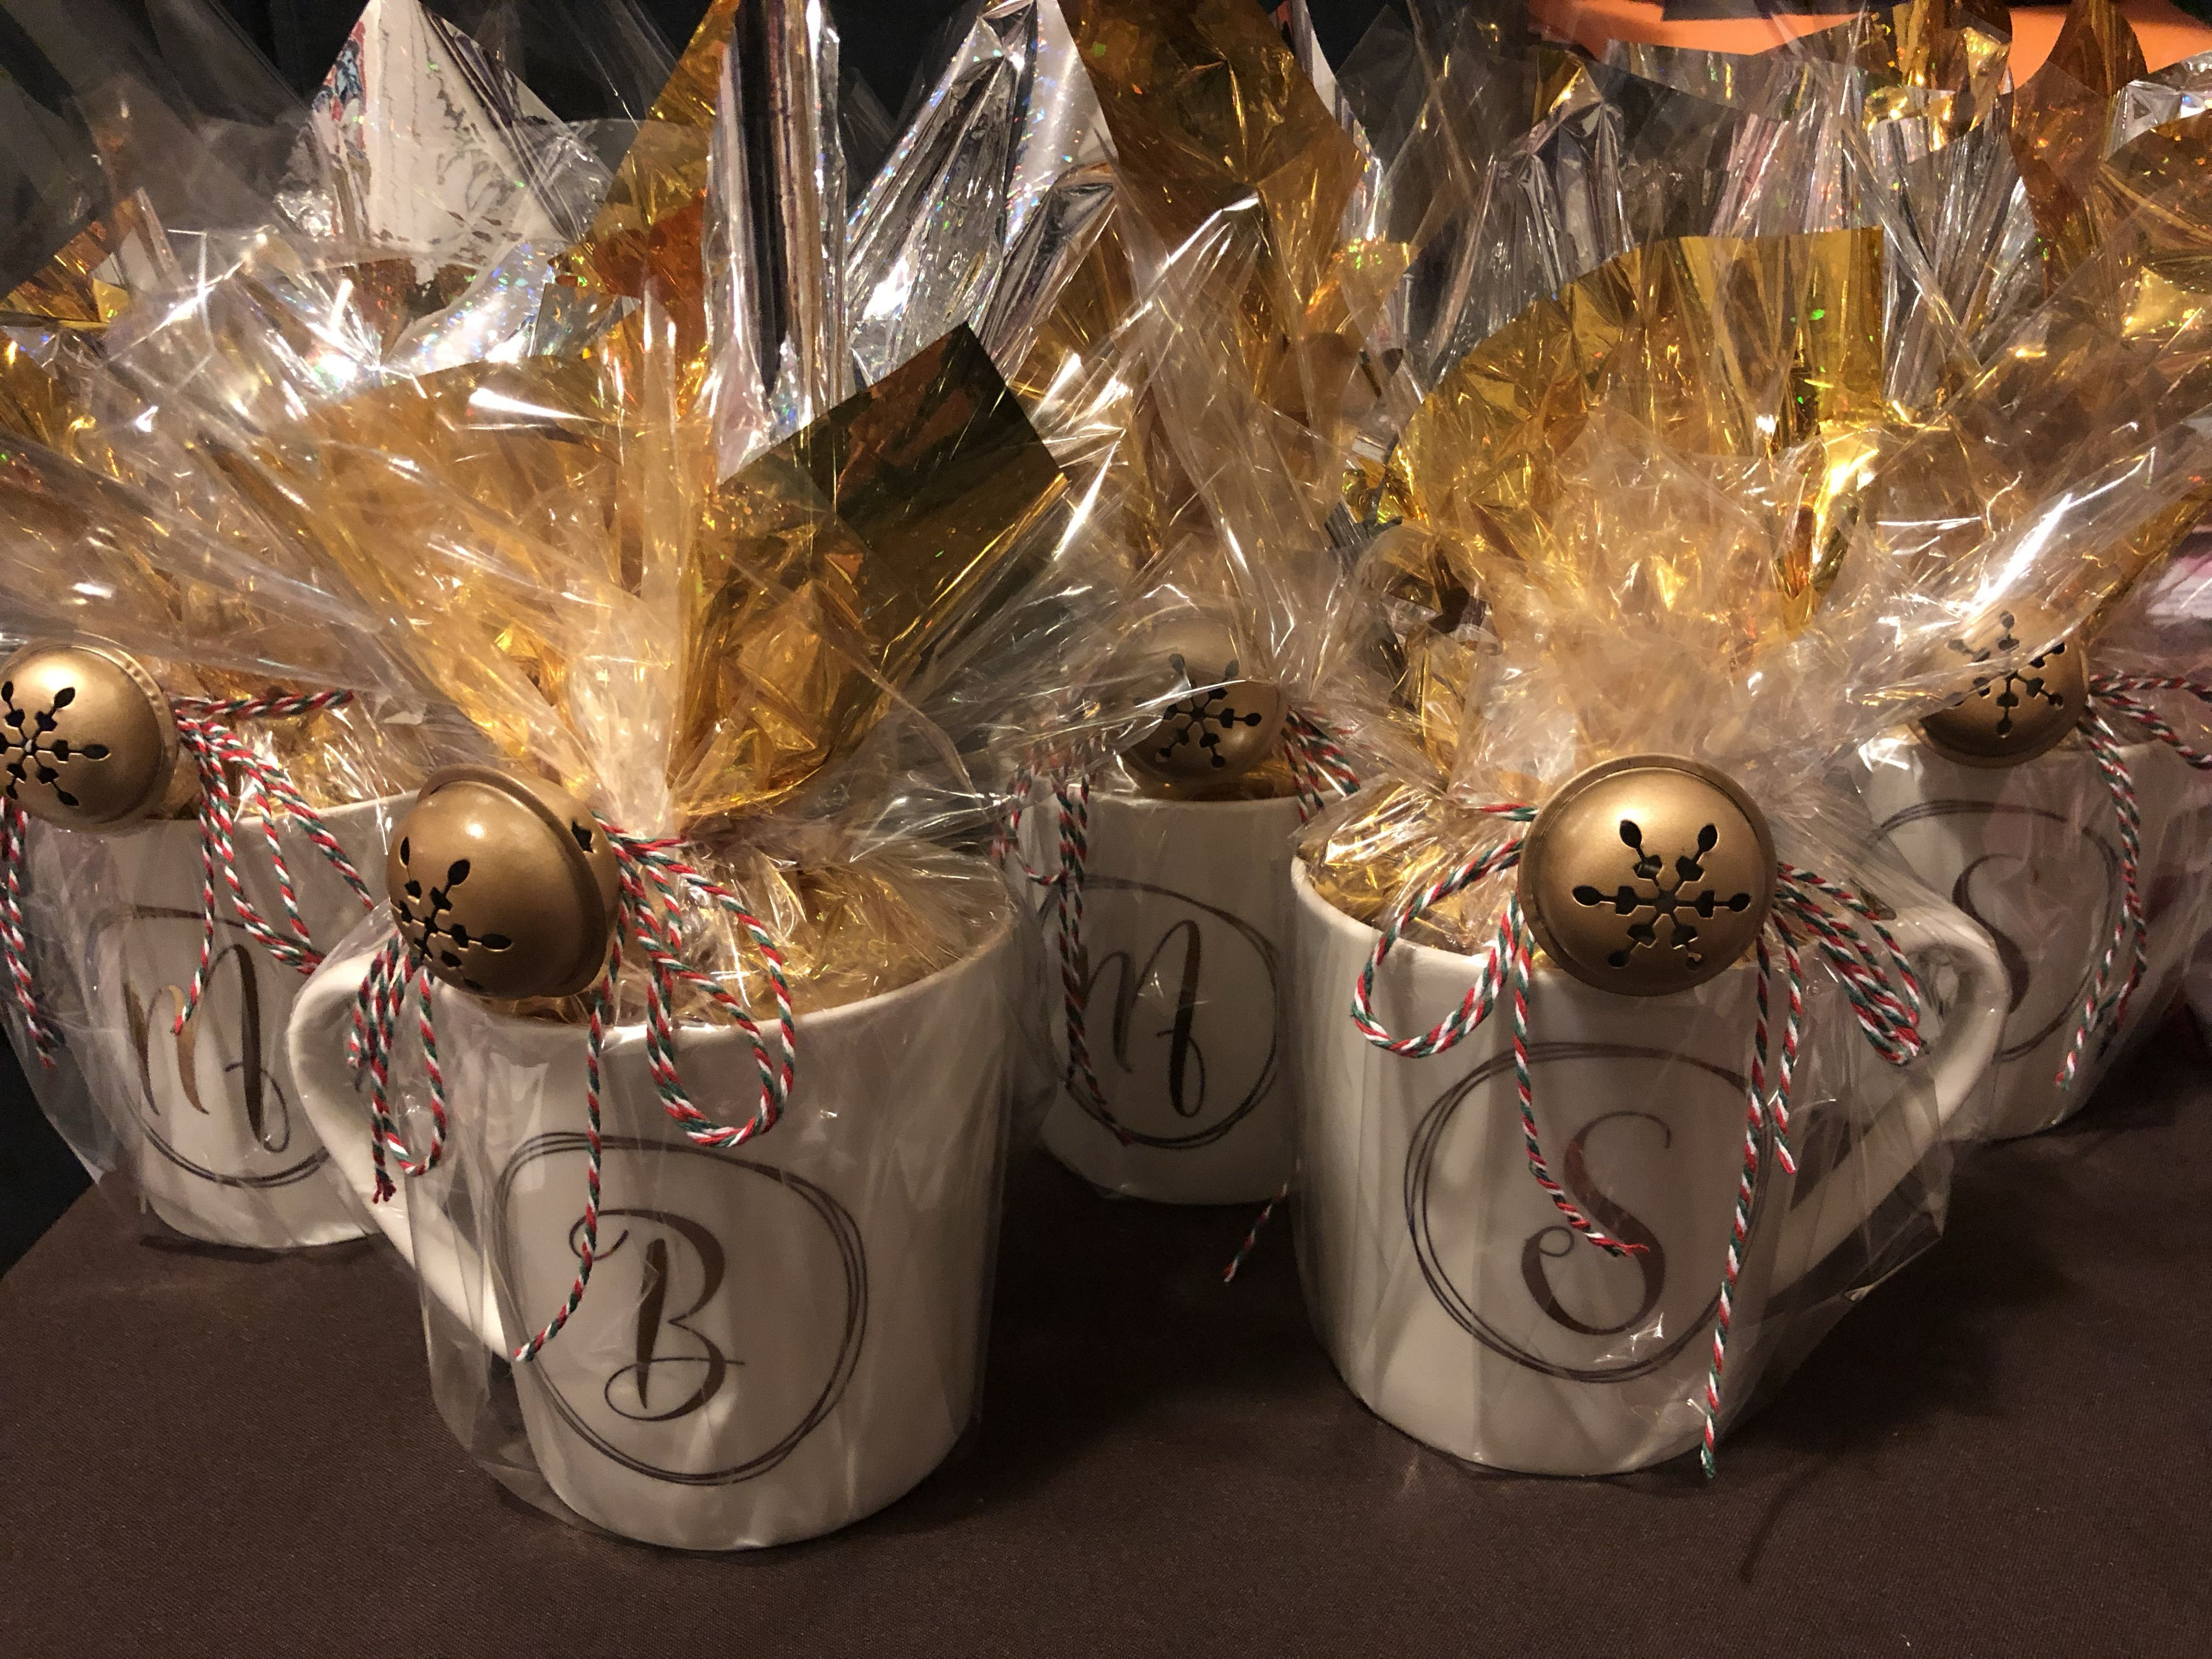 Wrapped monogram mugs gifts Coffee gifts card, Starbucks